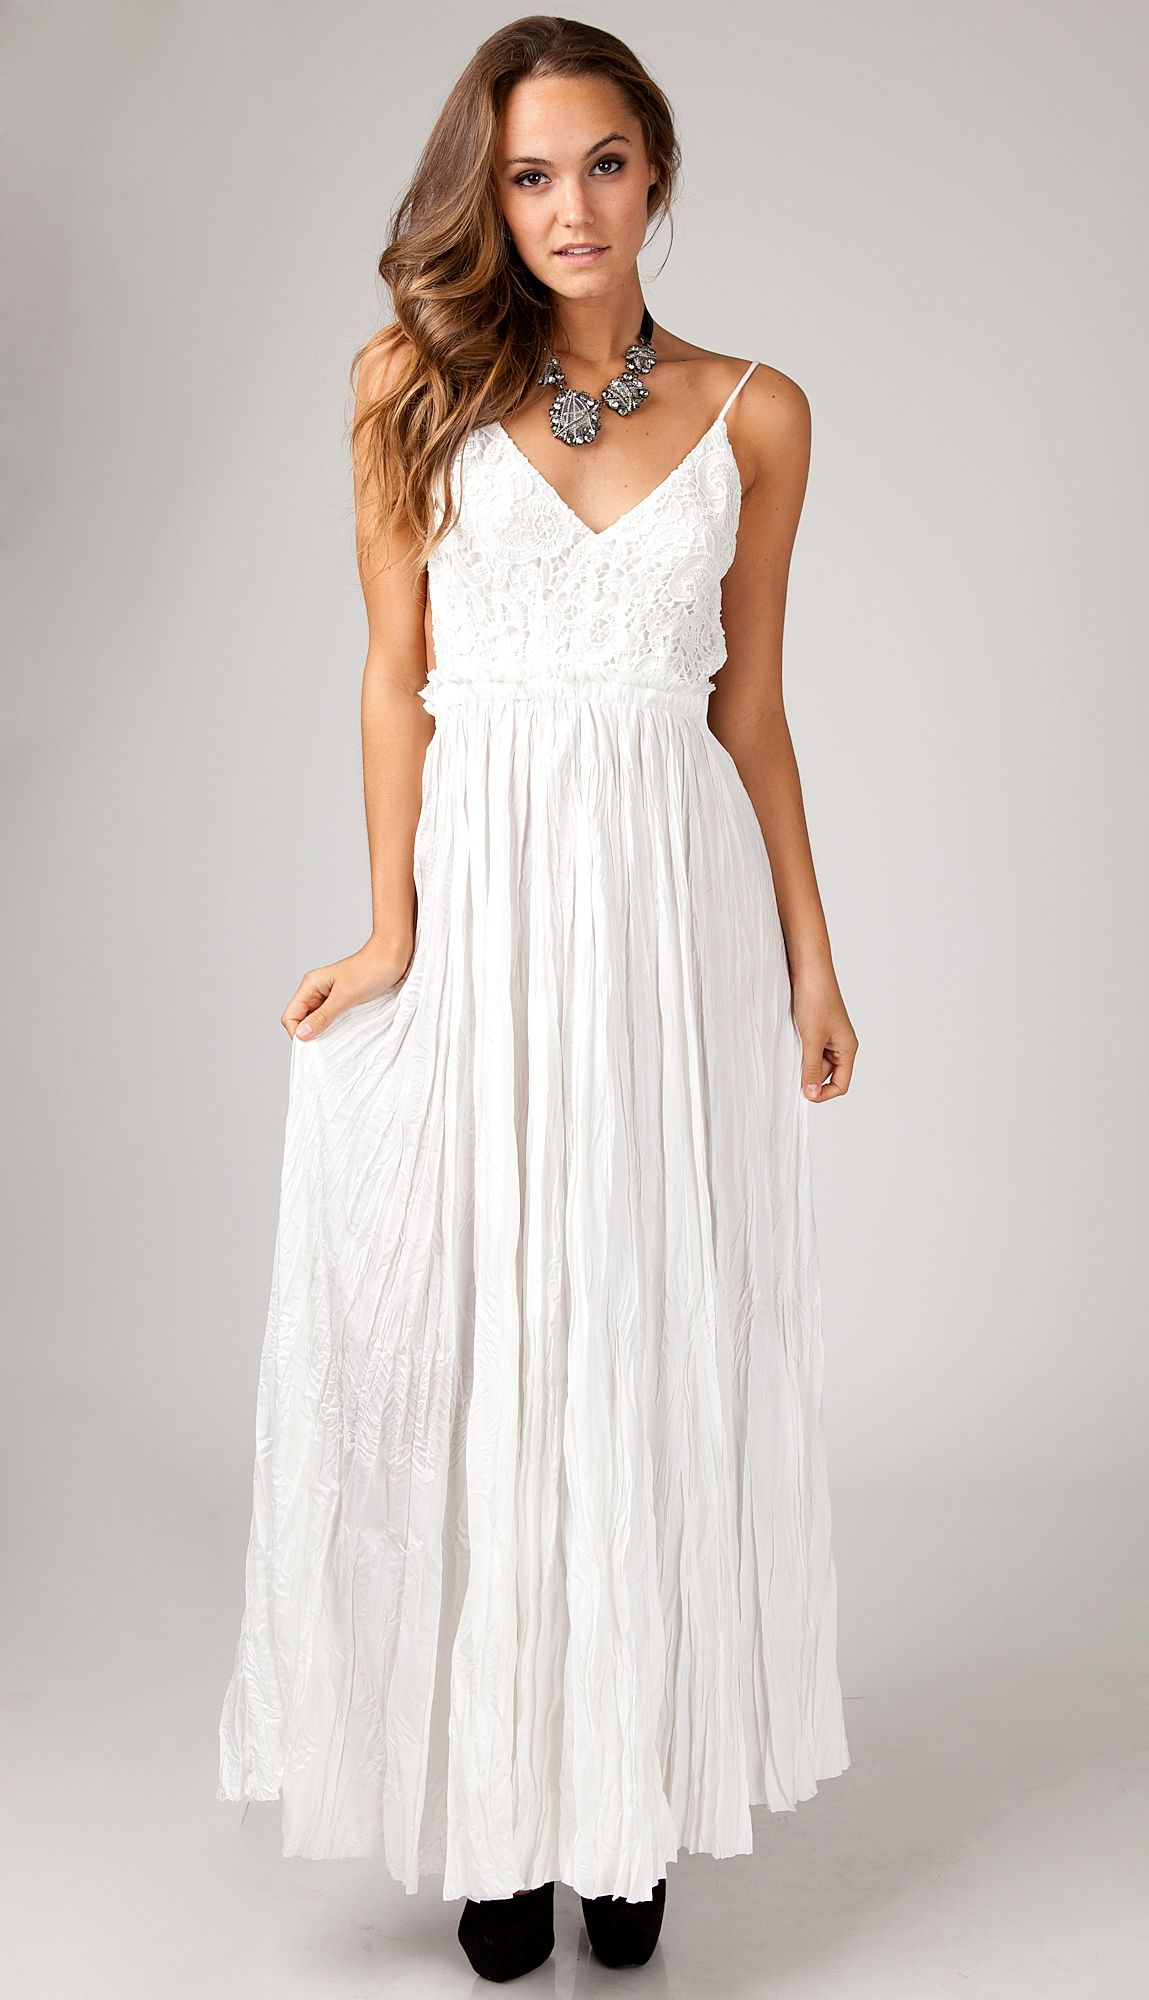 Images of Long White Lace Maxi Dress - Reikian